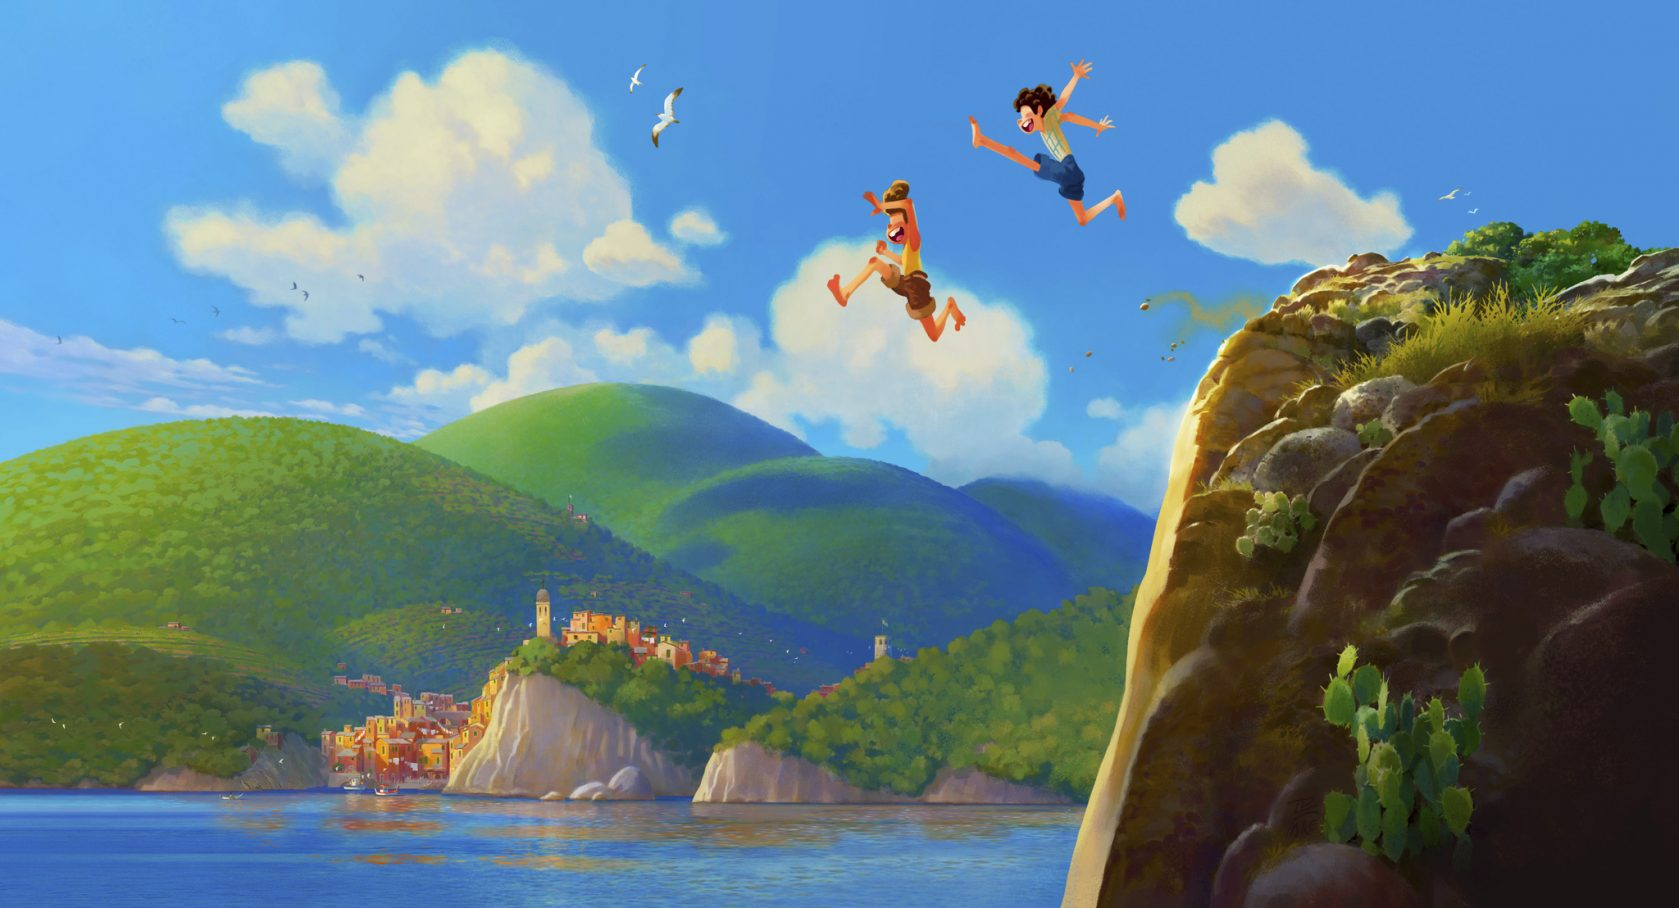 Disney and Pixar Release Teaser Trailer For New Animated Film 'Luca'